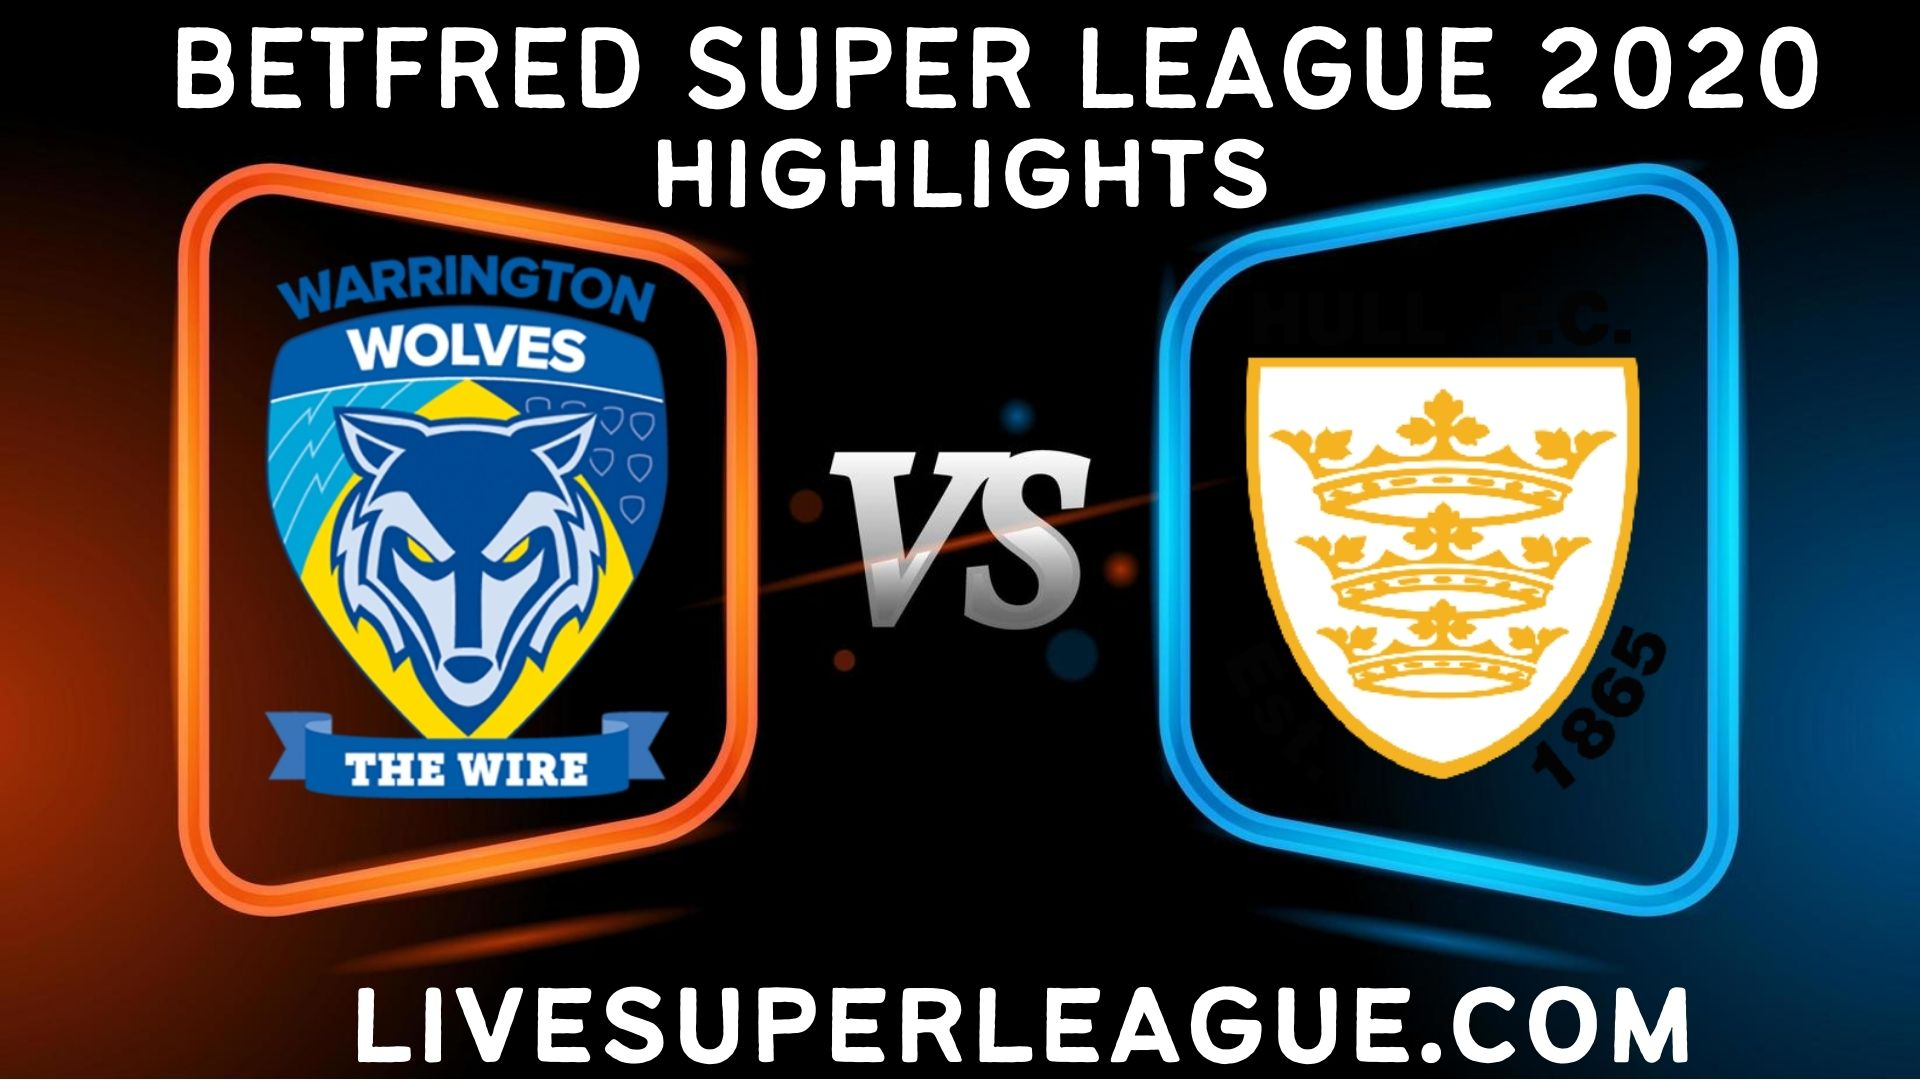 Warrington Wolves vs Hull FC Highlights 2020